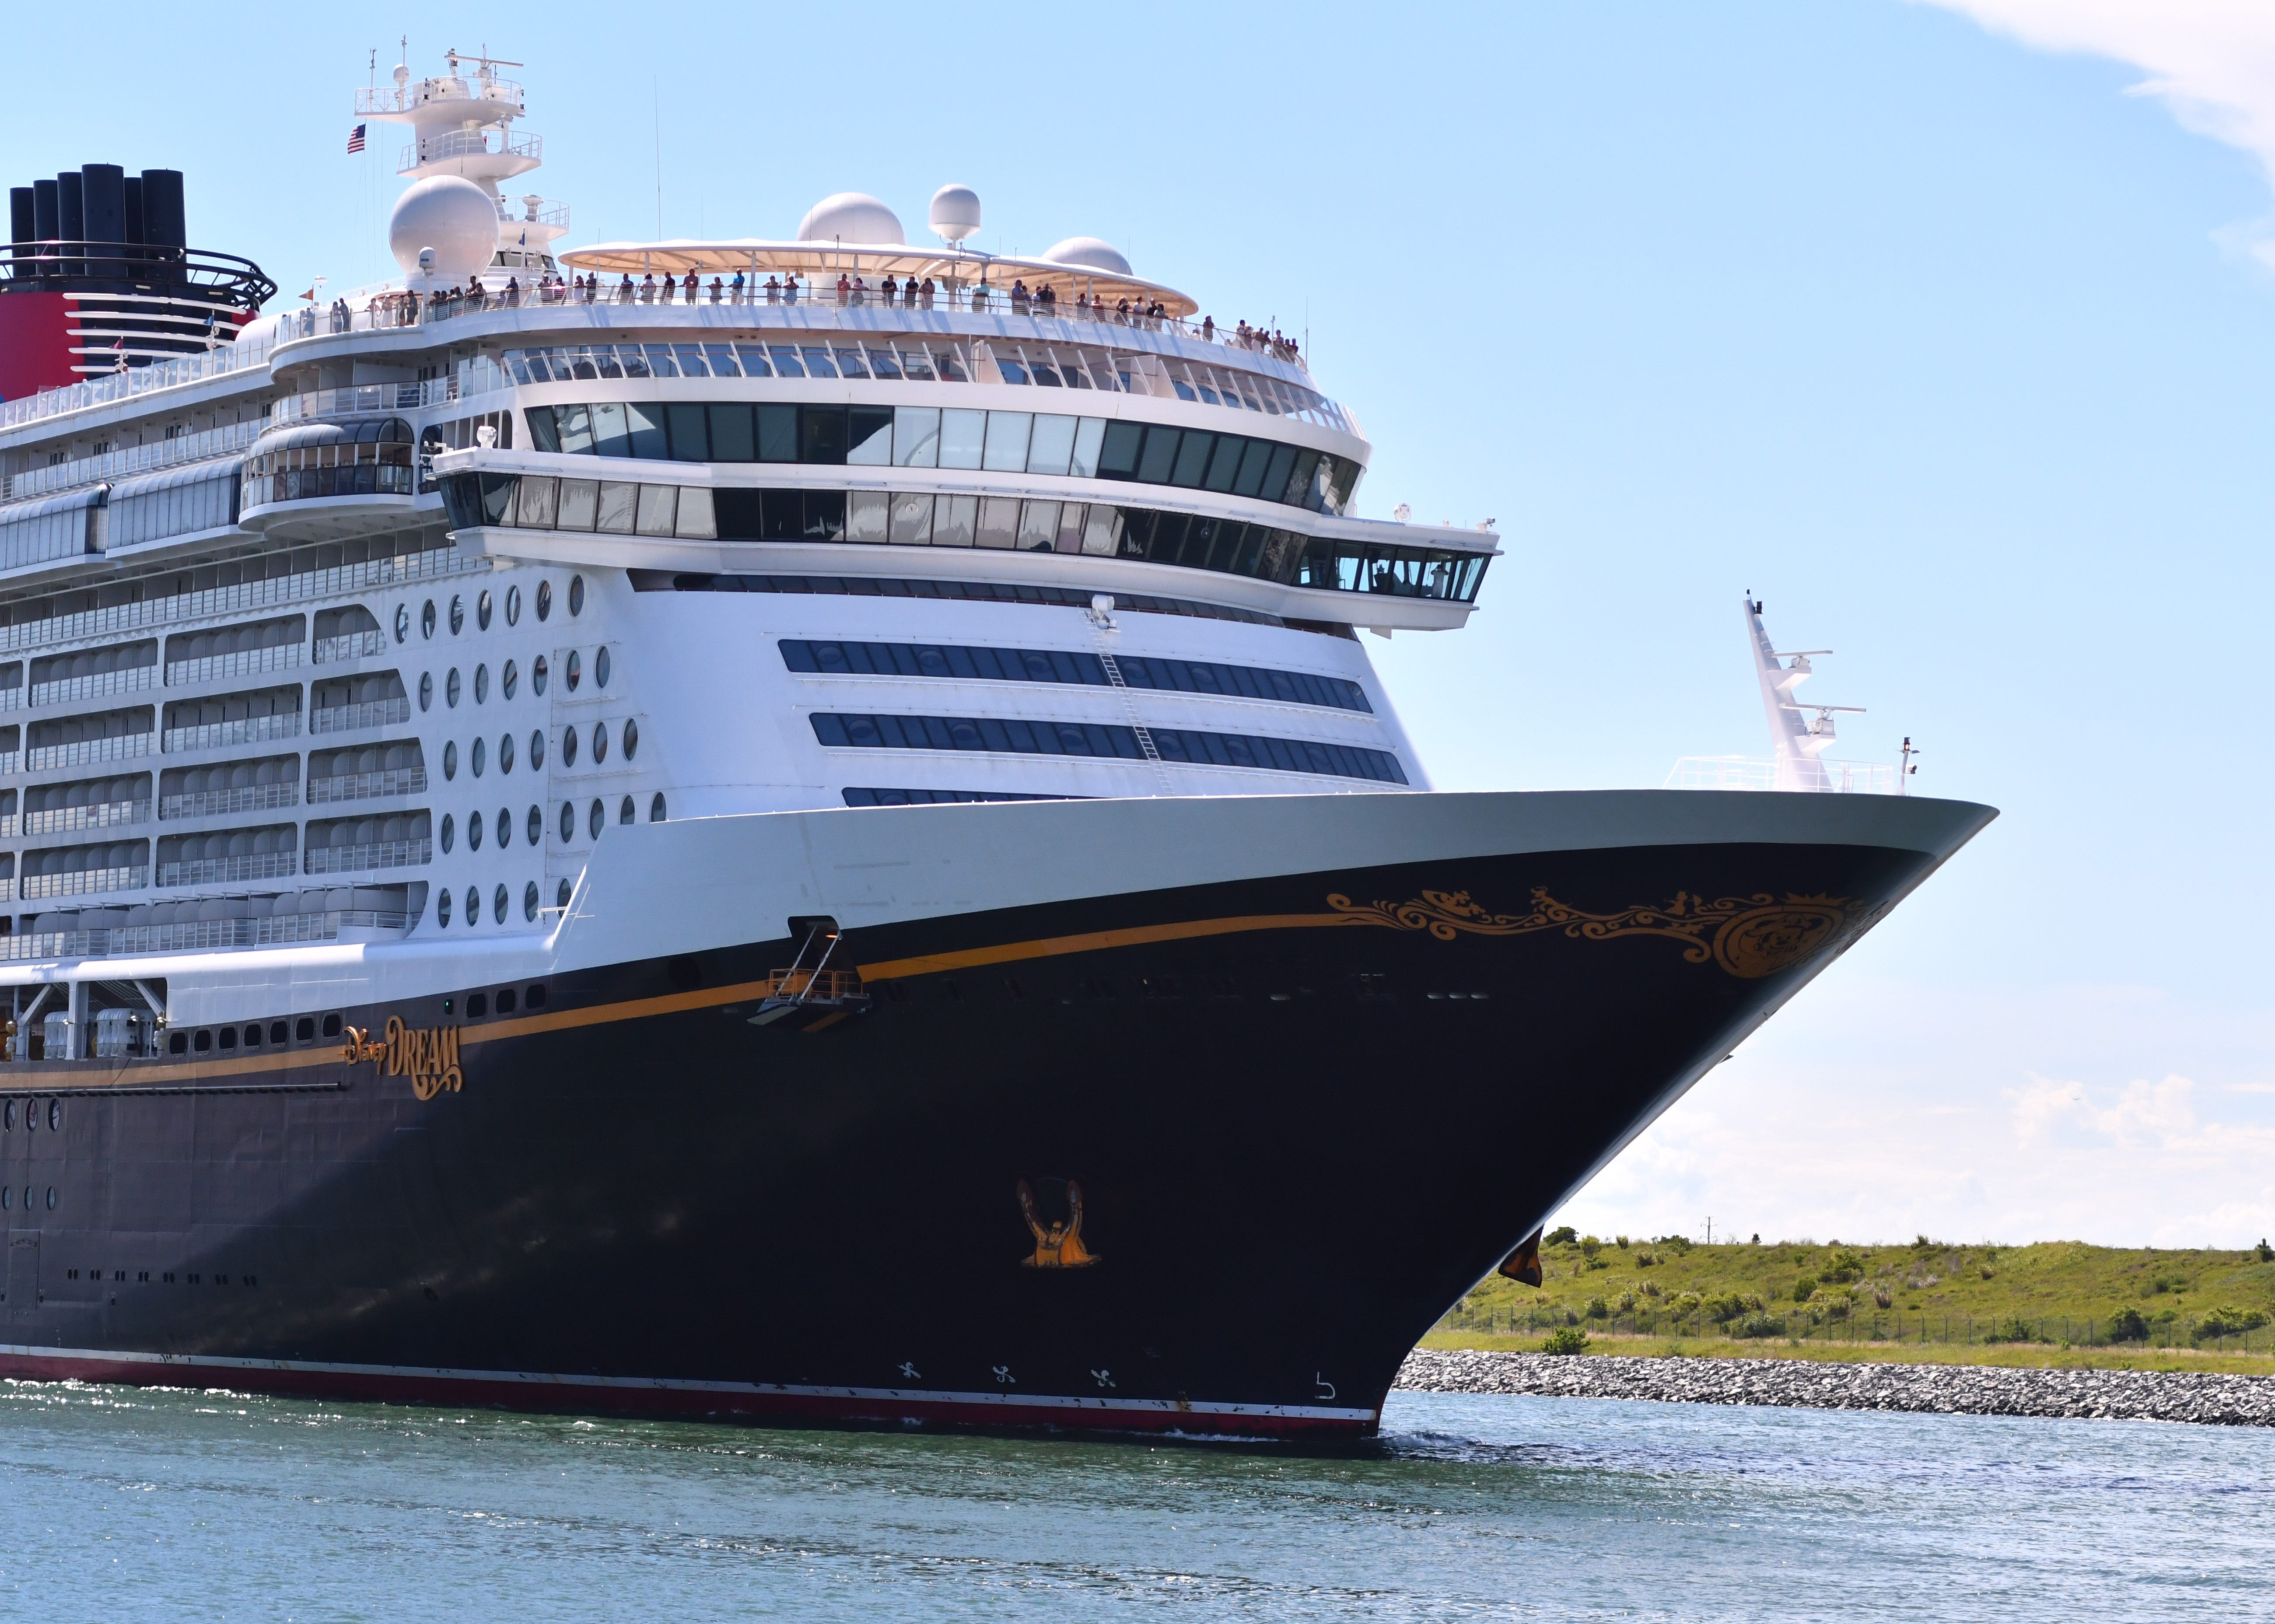 Disney Cruise Line resumes US sailings from Florida in August with Disney Dream